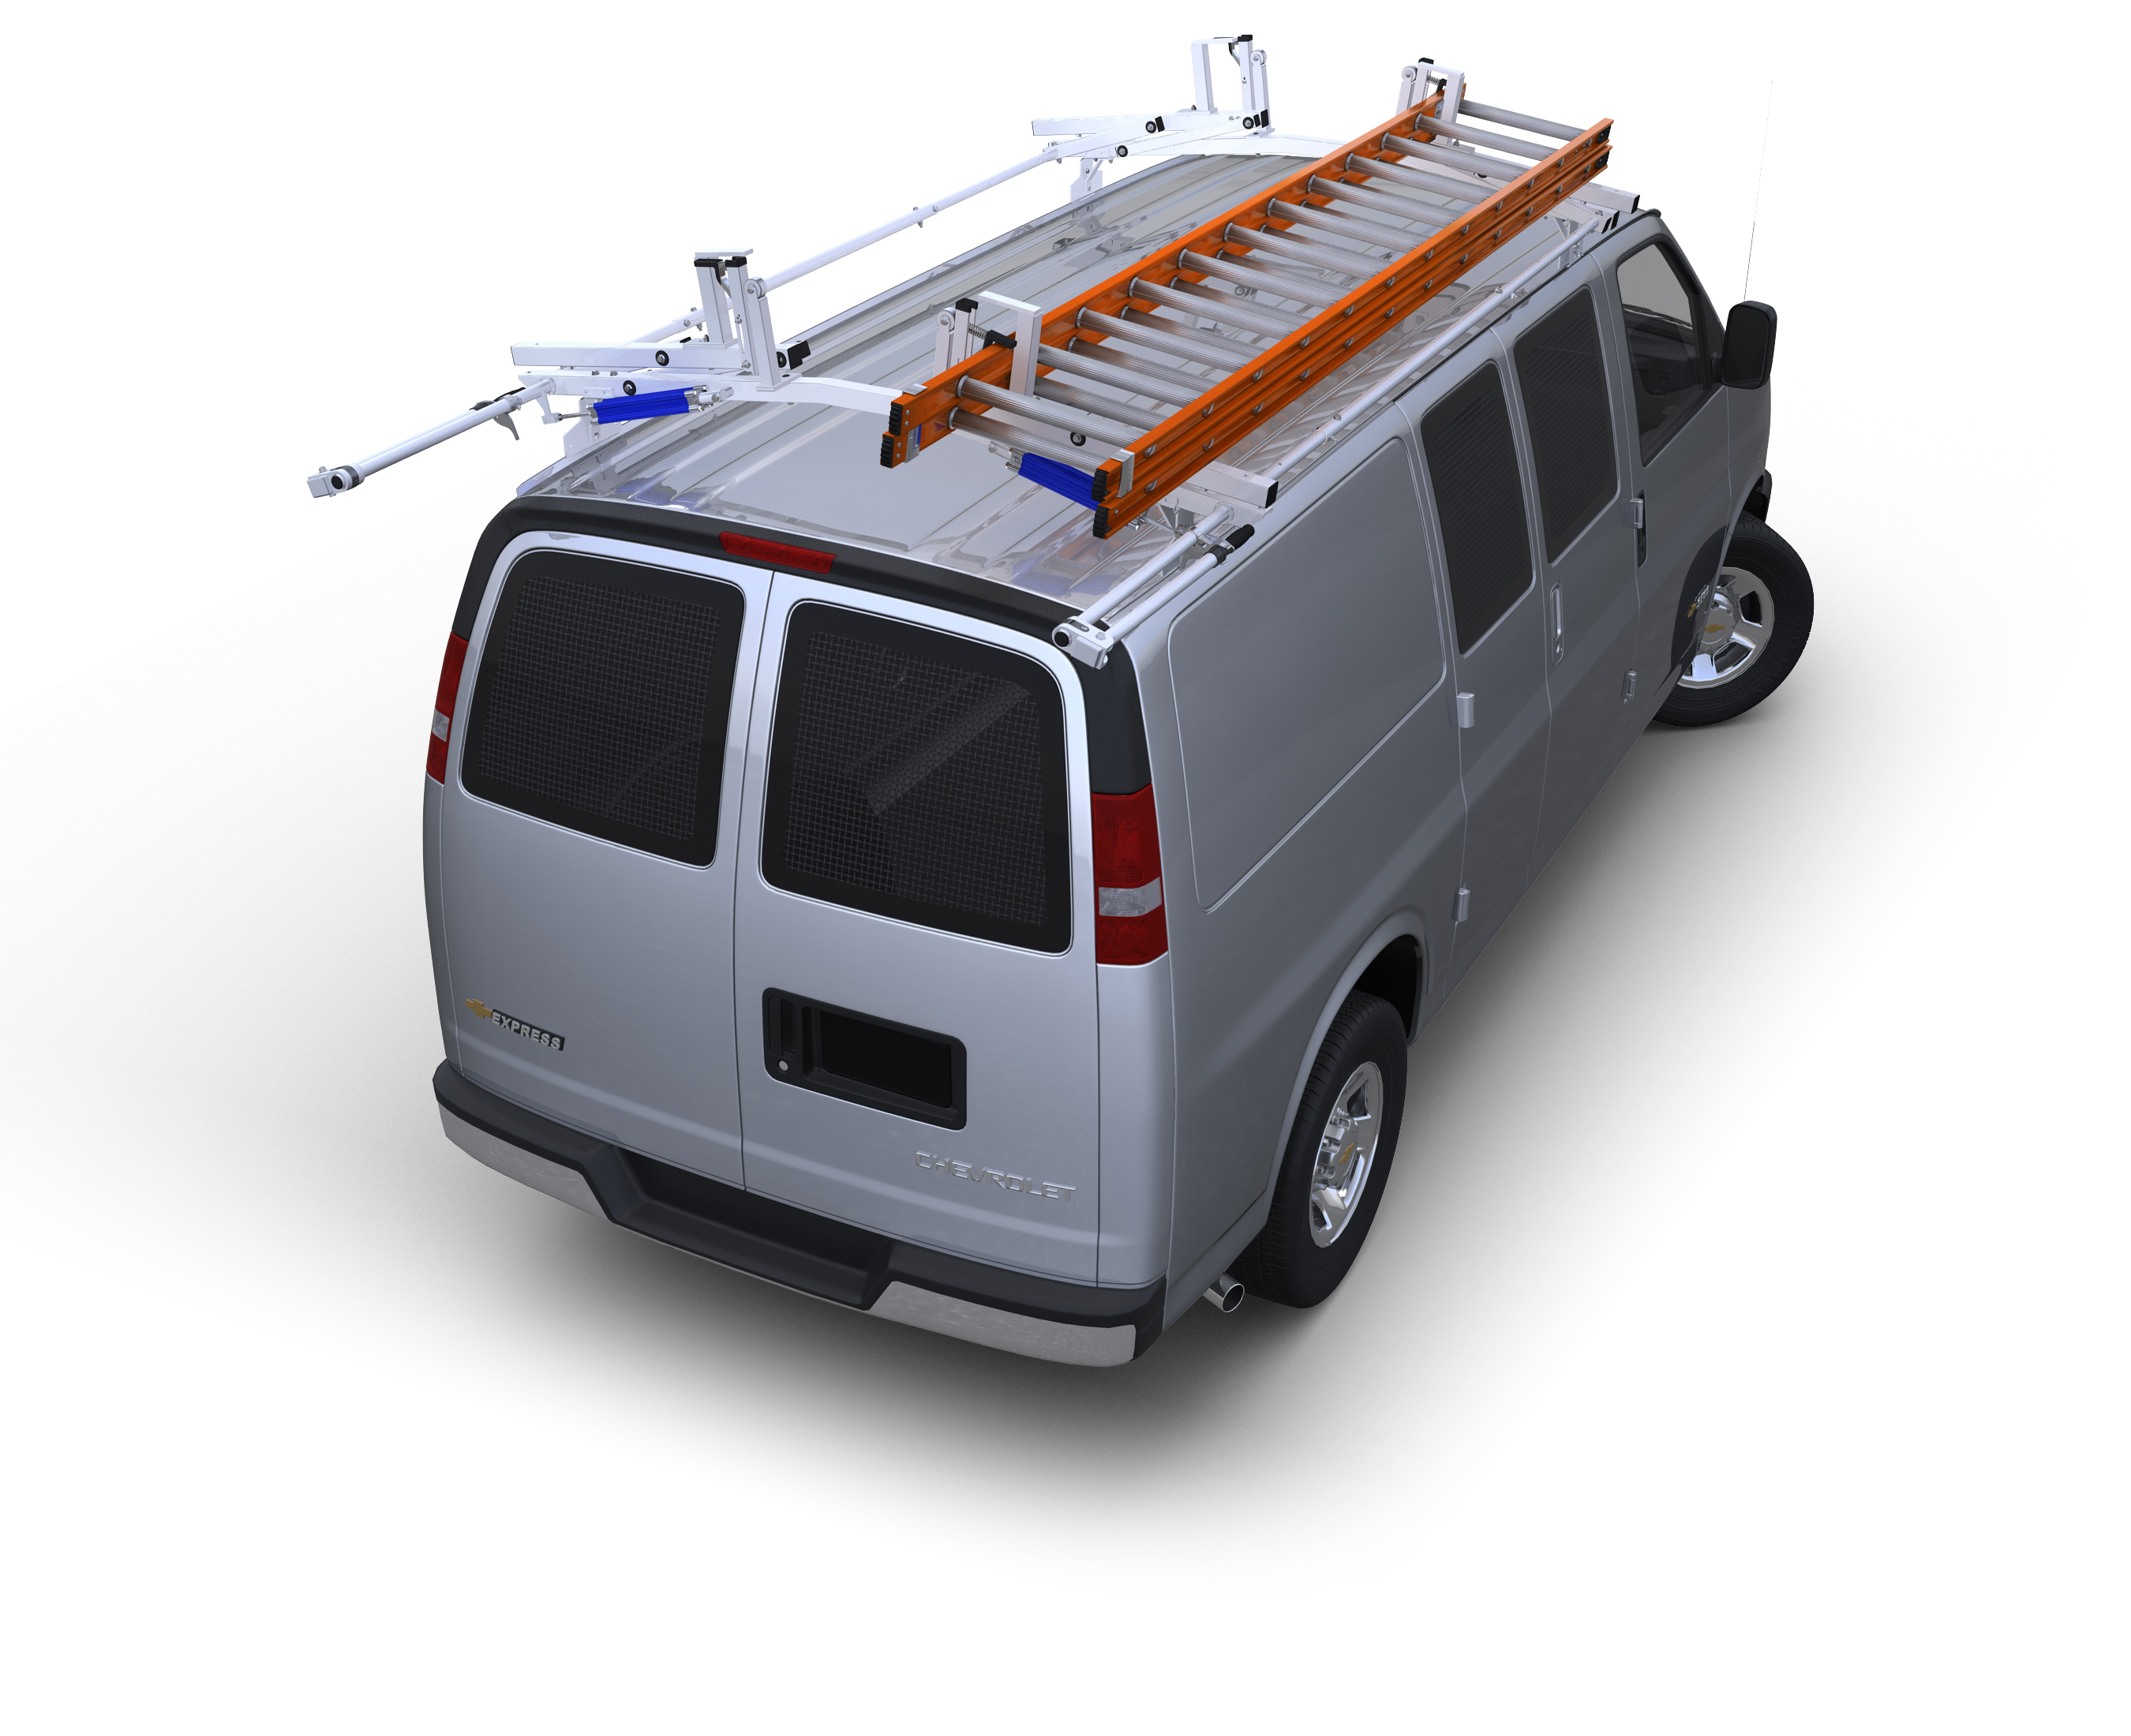 Maxi-Stor Bin System for High Roof Vans